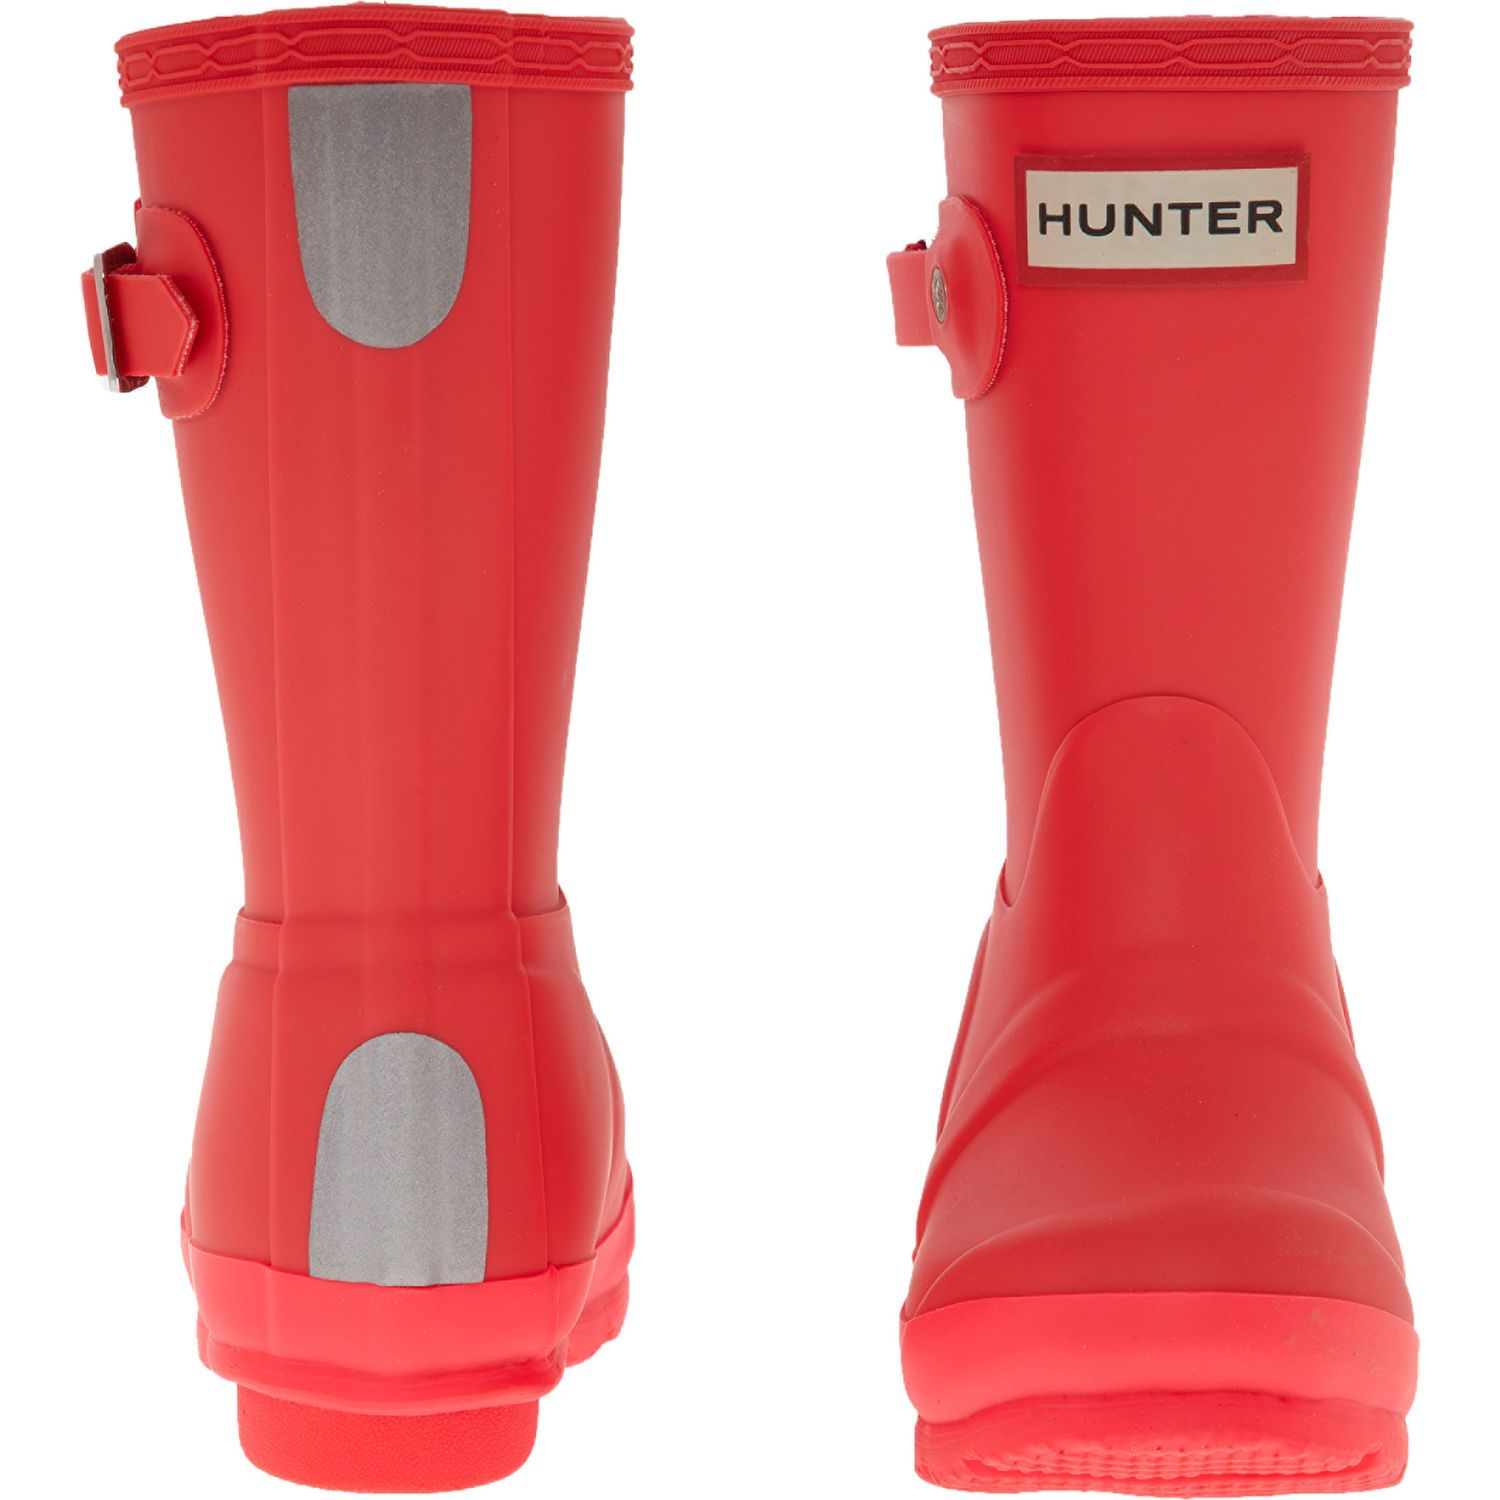 Bright Coral Wellies Boots Shoes Kids Tk Maxx Girls Boots Hunter Boots Wellies Boots